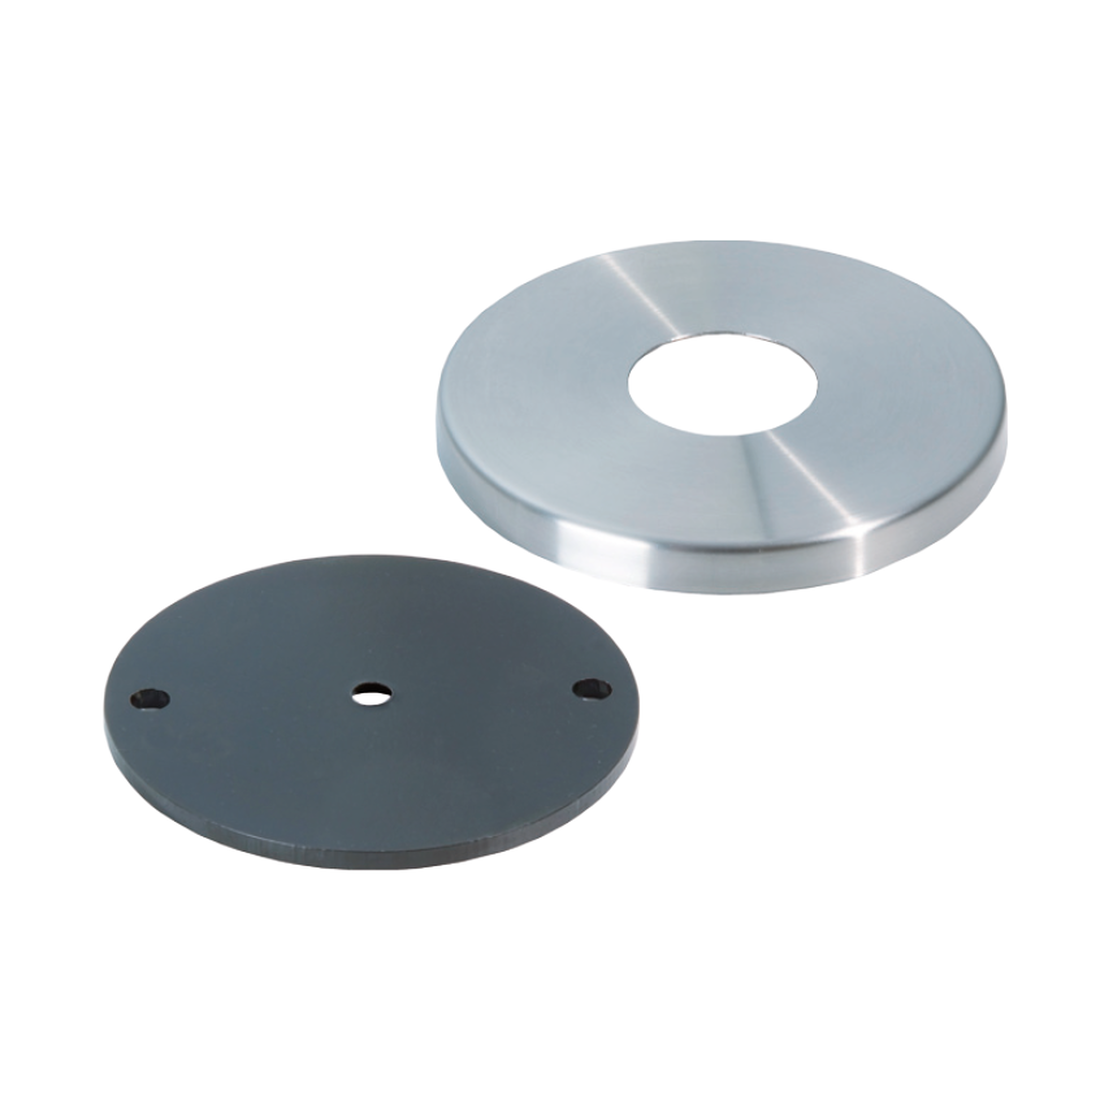 BOTTOM PLATE WITH COVER PLATE, d (TUBE) Ø 40MM